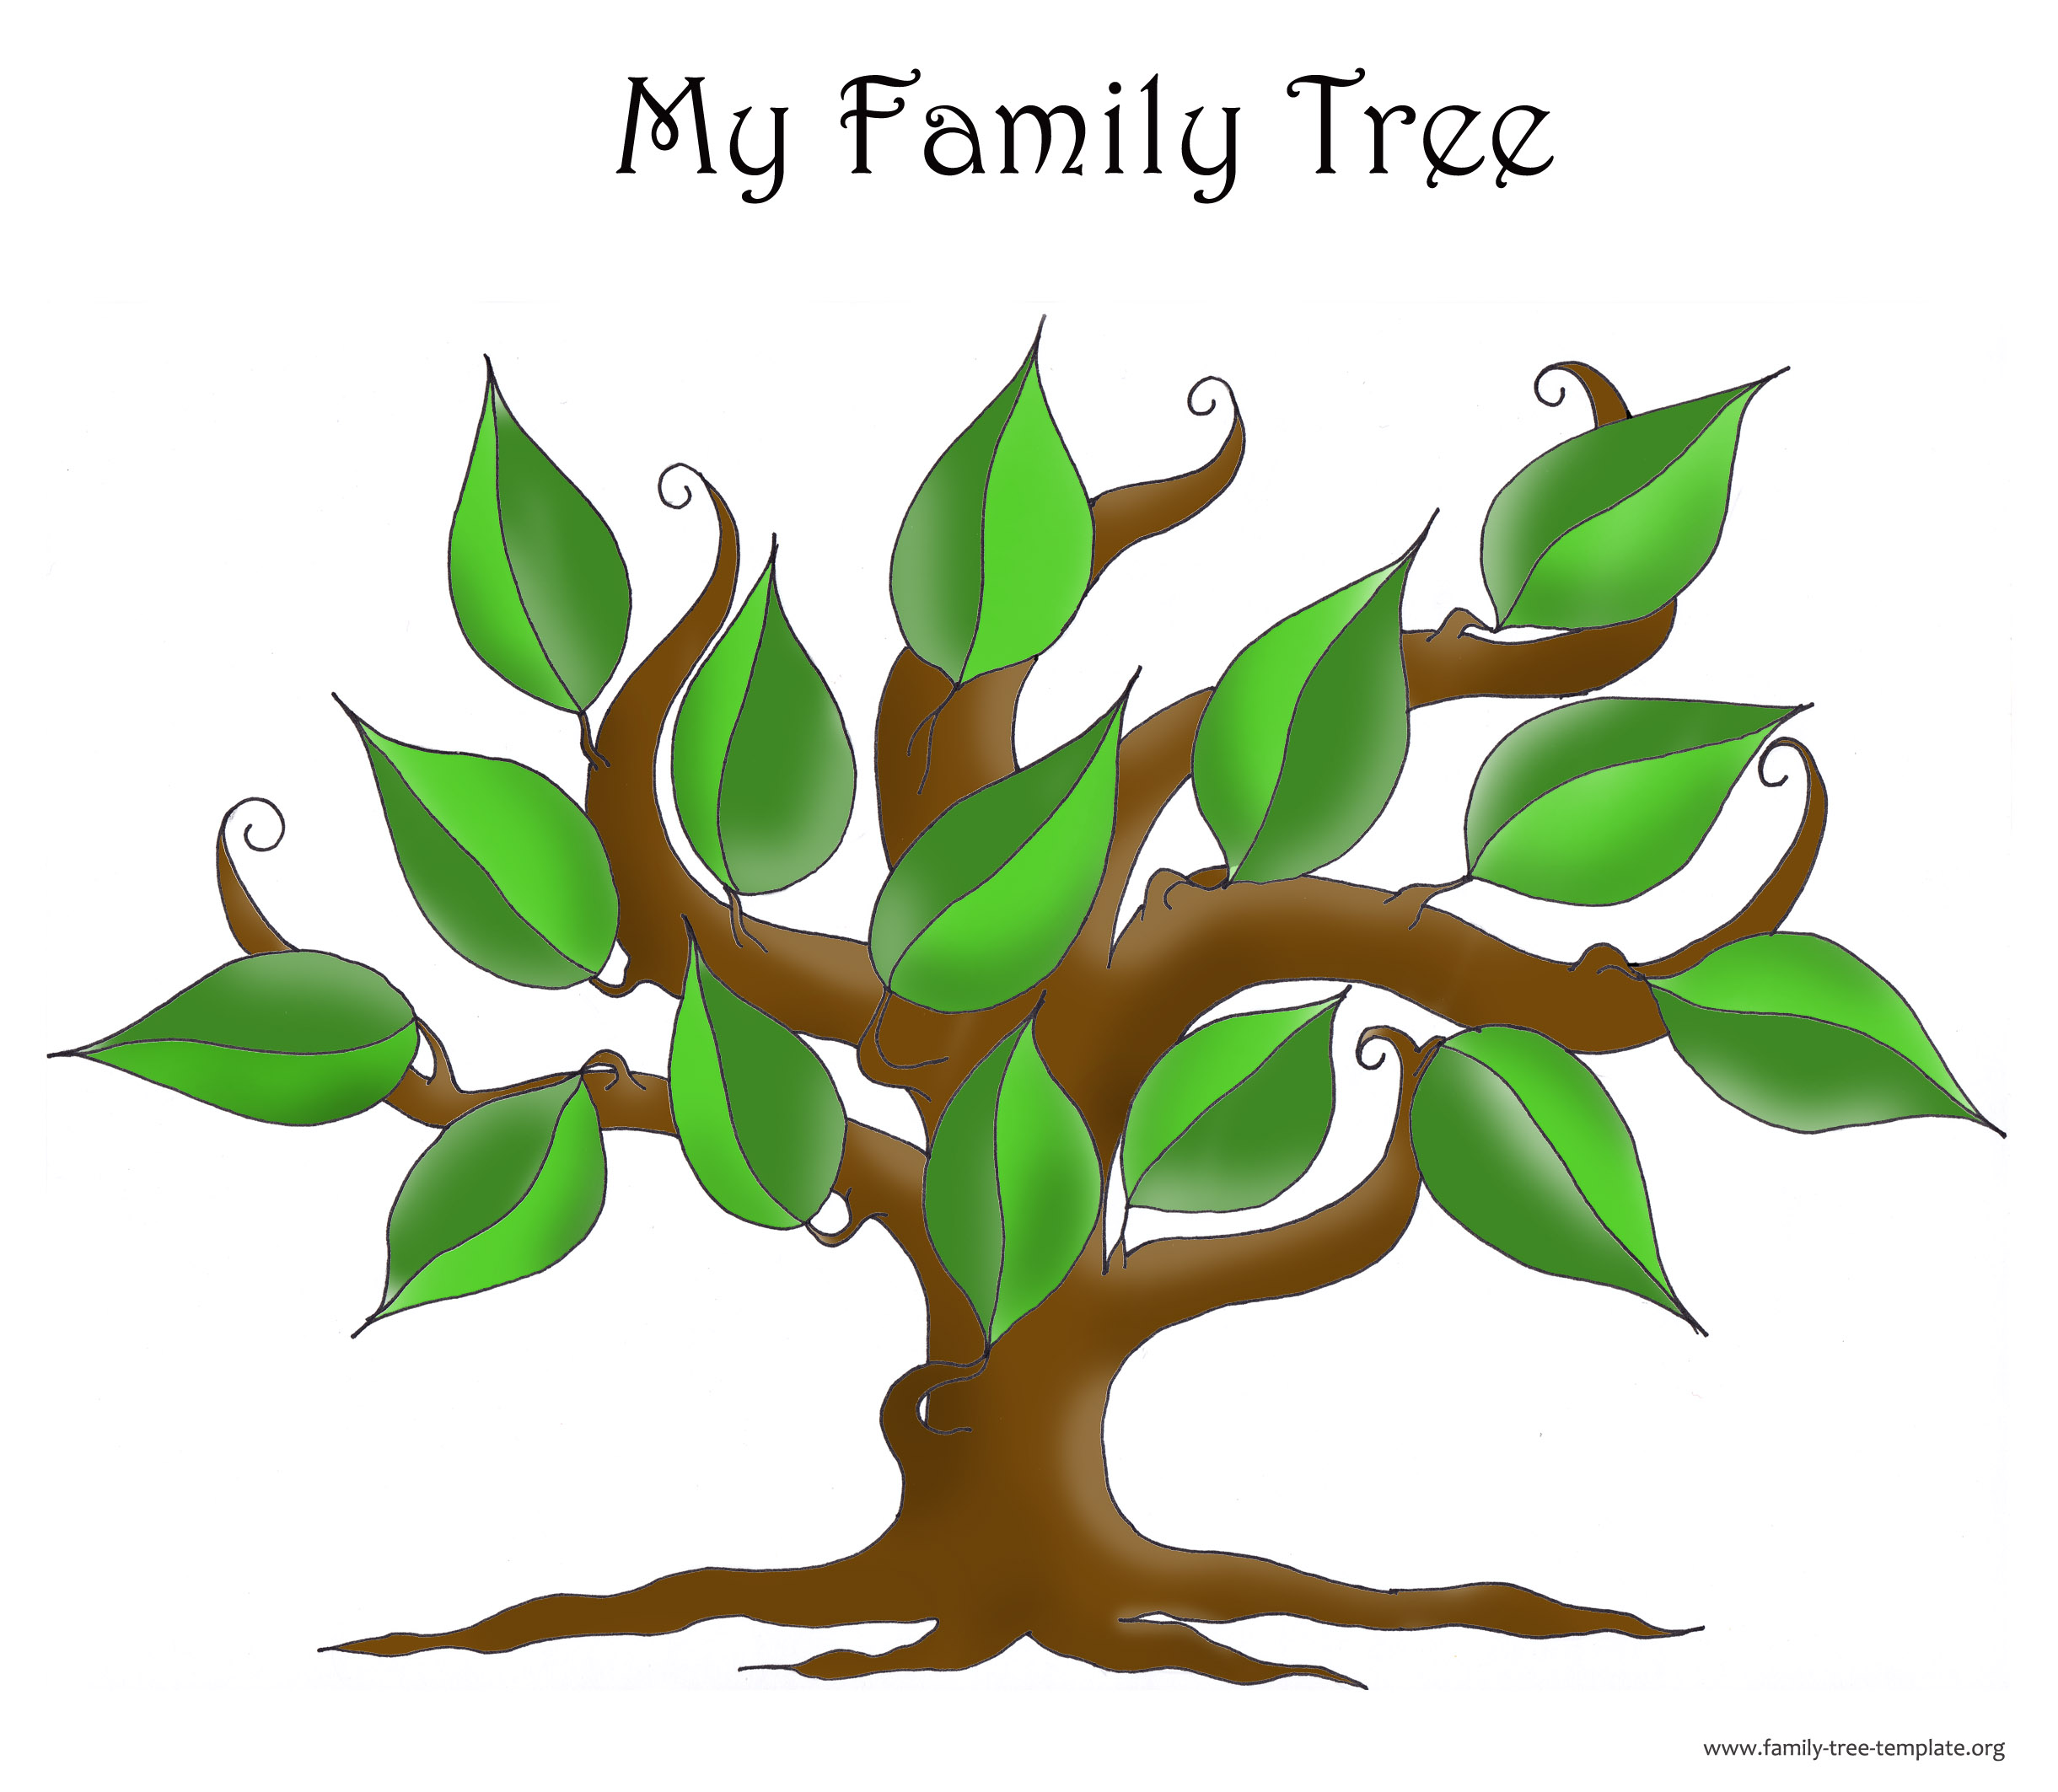 Family Tree Template Resources.